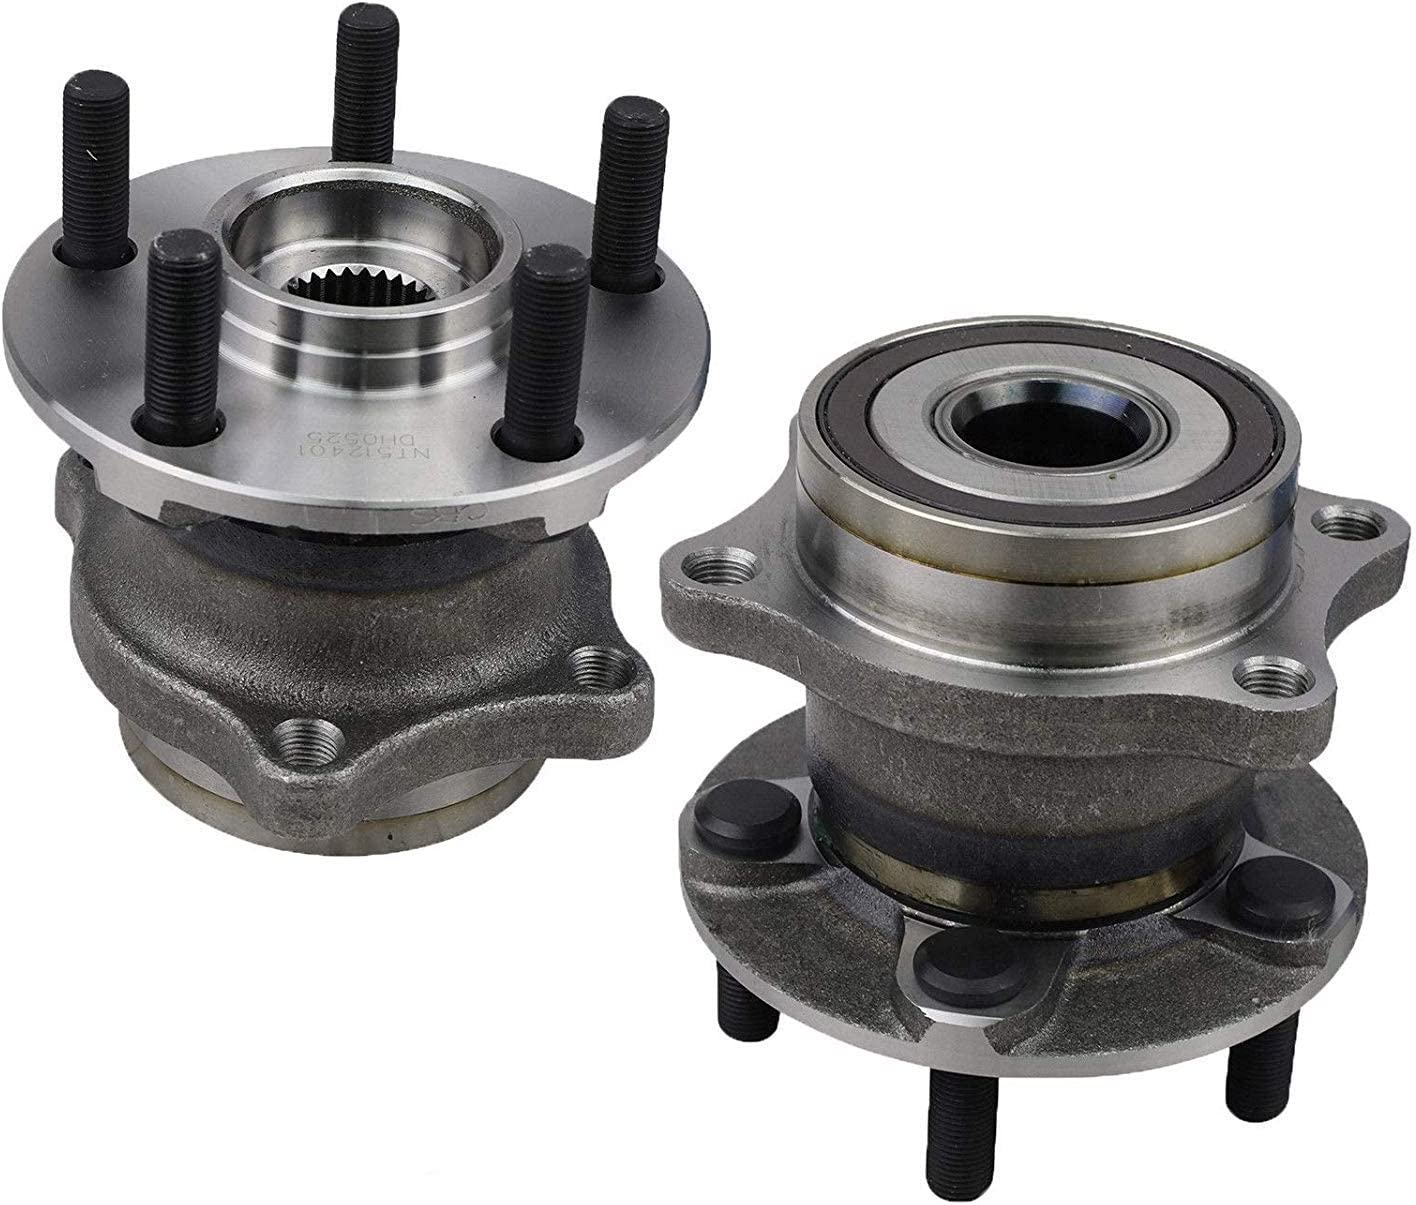 Stirling 2011 For Subaru Outback 2.5i Front Wheel Bearing and Hub Assembly x 1